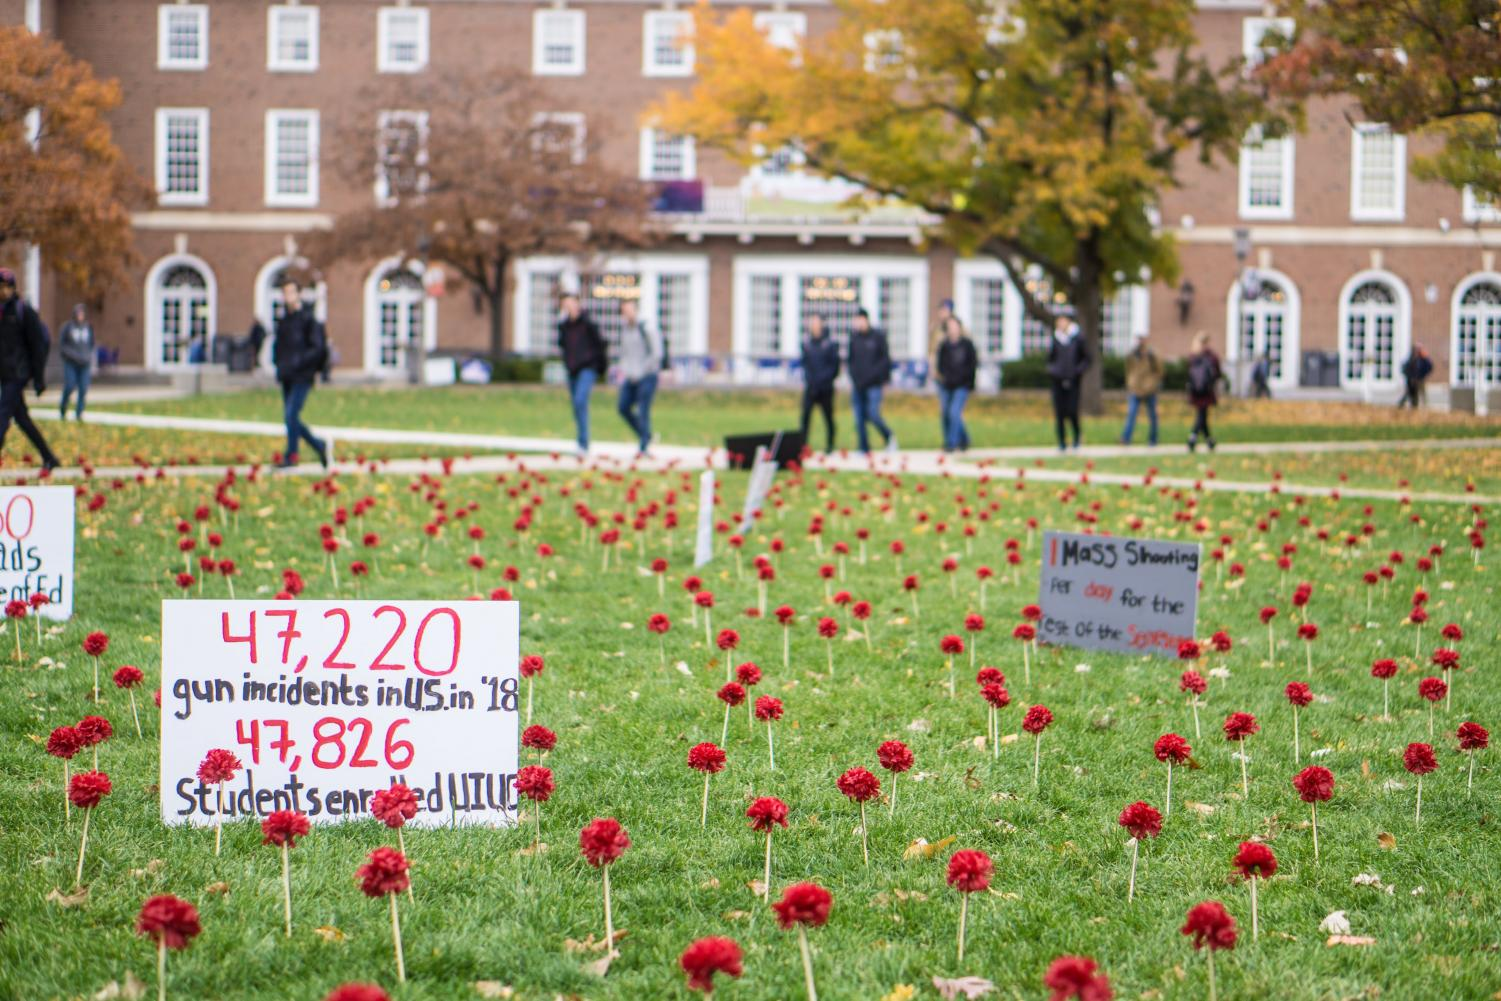 Carnations+and+signs+set+up+by+Amnesty+International+line+the+Main+Quad+to+raise+awareness+for+gun+violence+on+Thursday.+This+sign+compares+the+number+of+gun-related+incidents+this+year+to+the+number+of+students+enrolled+at+the+University.